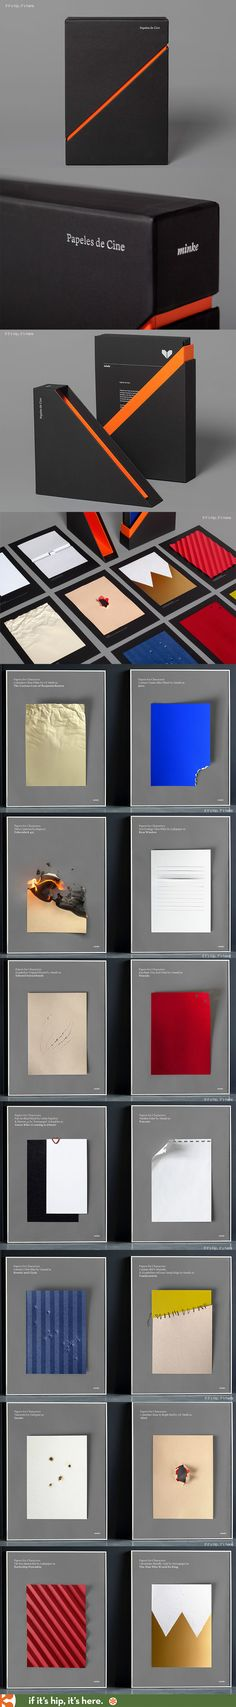 Beautifully boxed series of classic movies as paper art to promote Minke Papers.